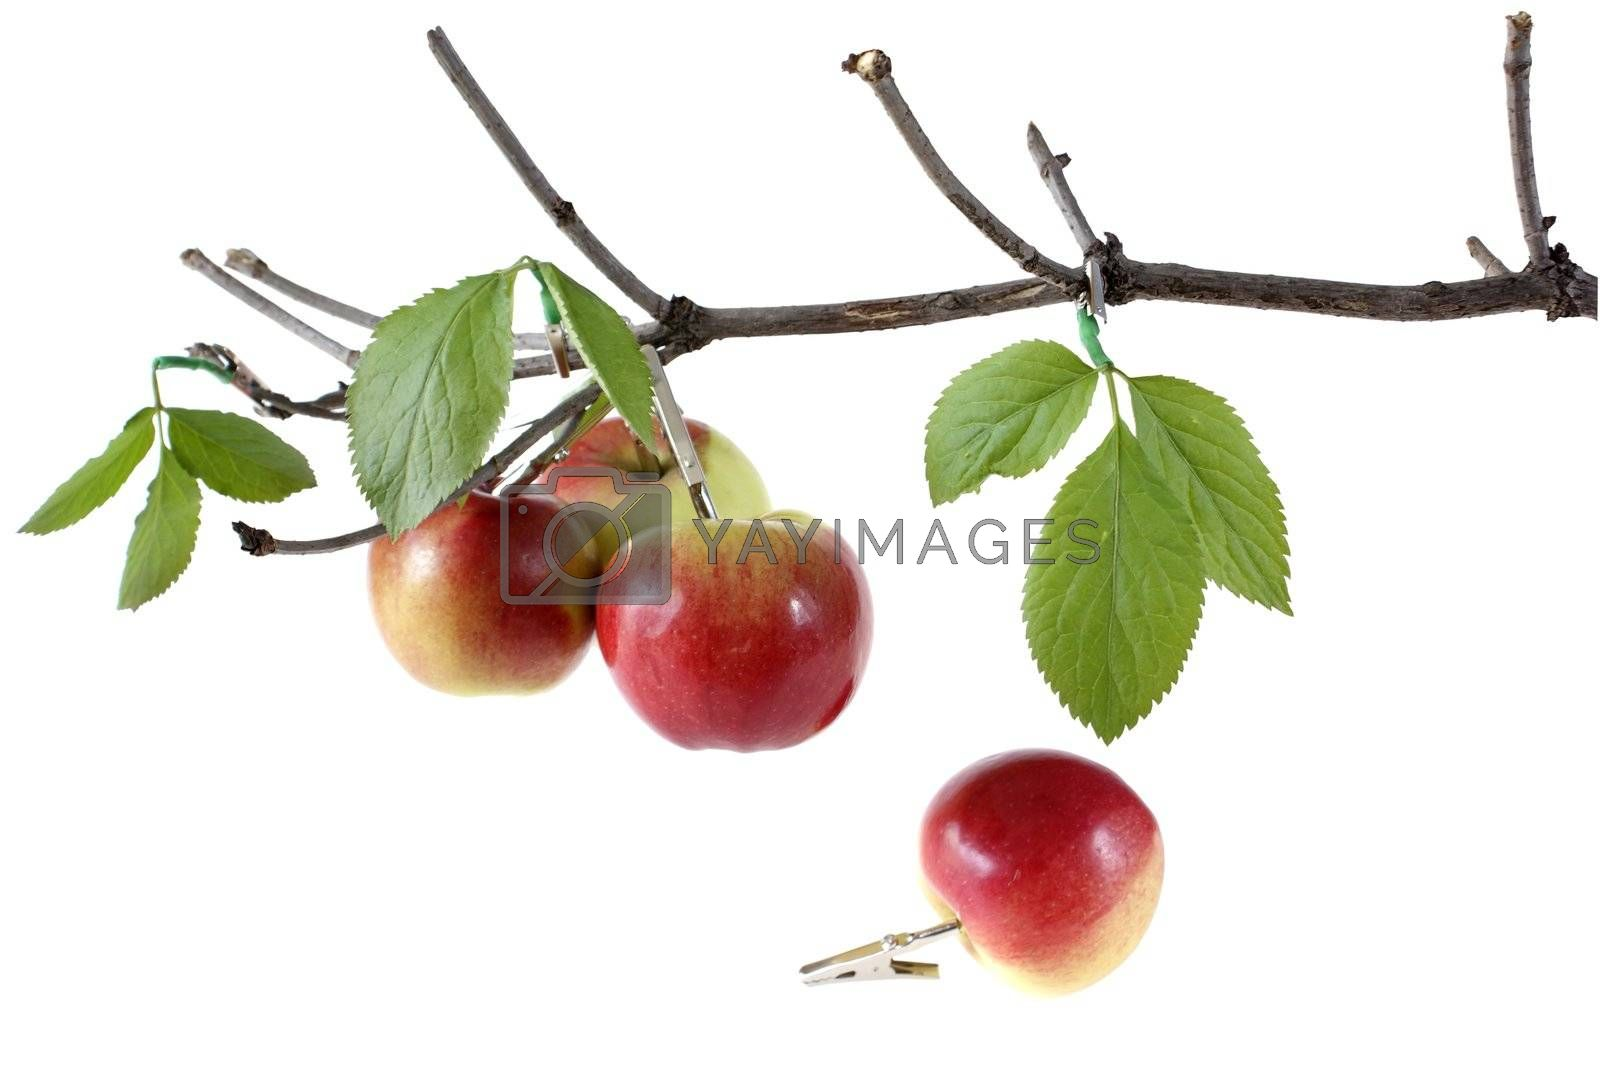 ripe apples are suspended on hive isolated on white background